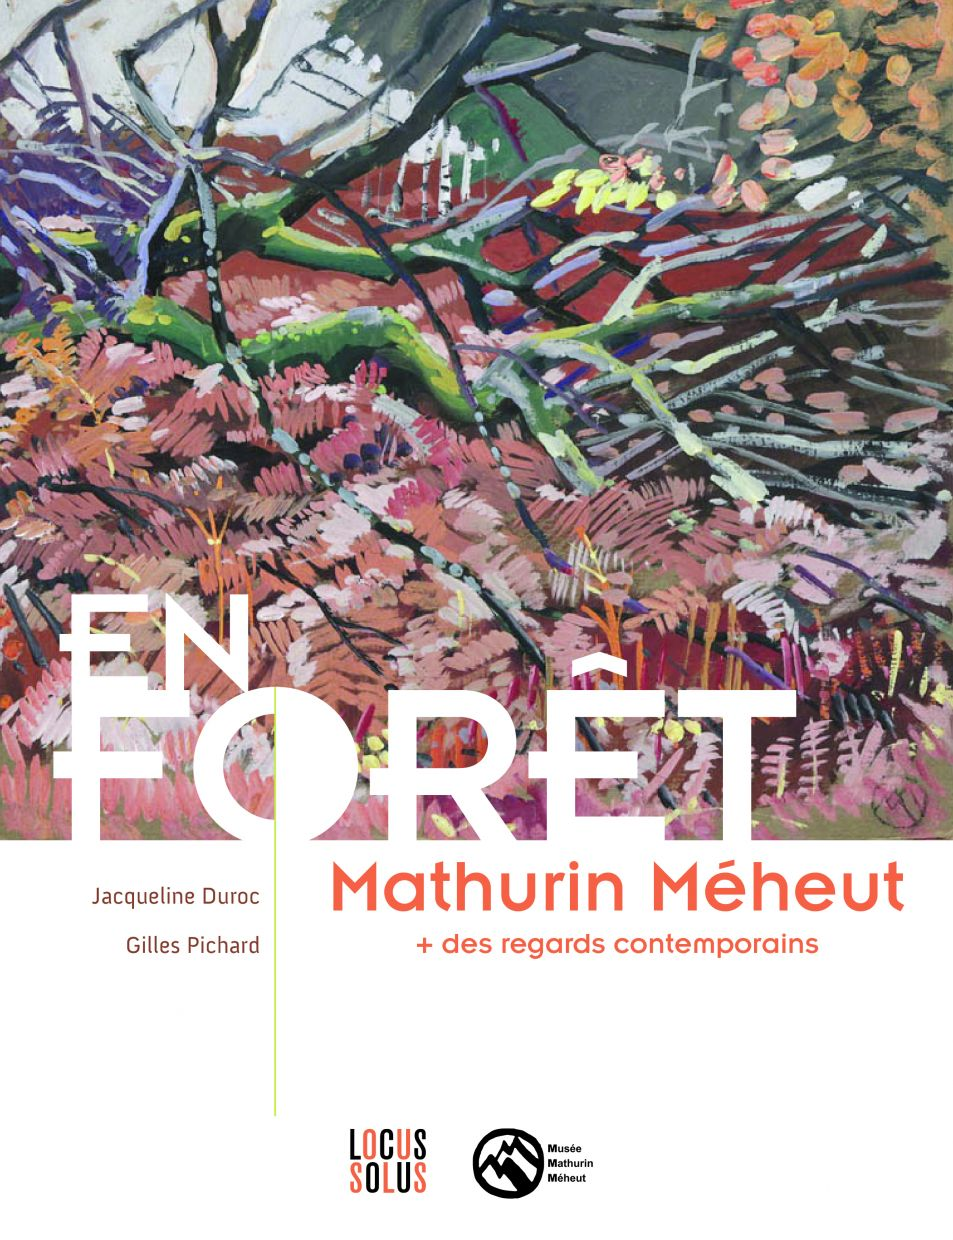 En forêt. Mathurin Méheut & des regards contemporains. Par Jacqueline Duroc et Gilles Pichard. Editions Locus Solus. Catalogue de l'exposition 2019 (112 pages). 20 € ©